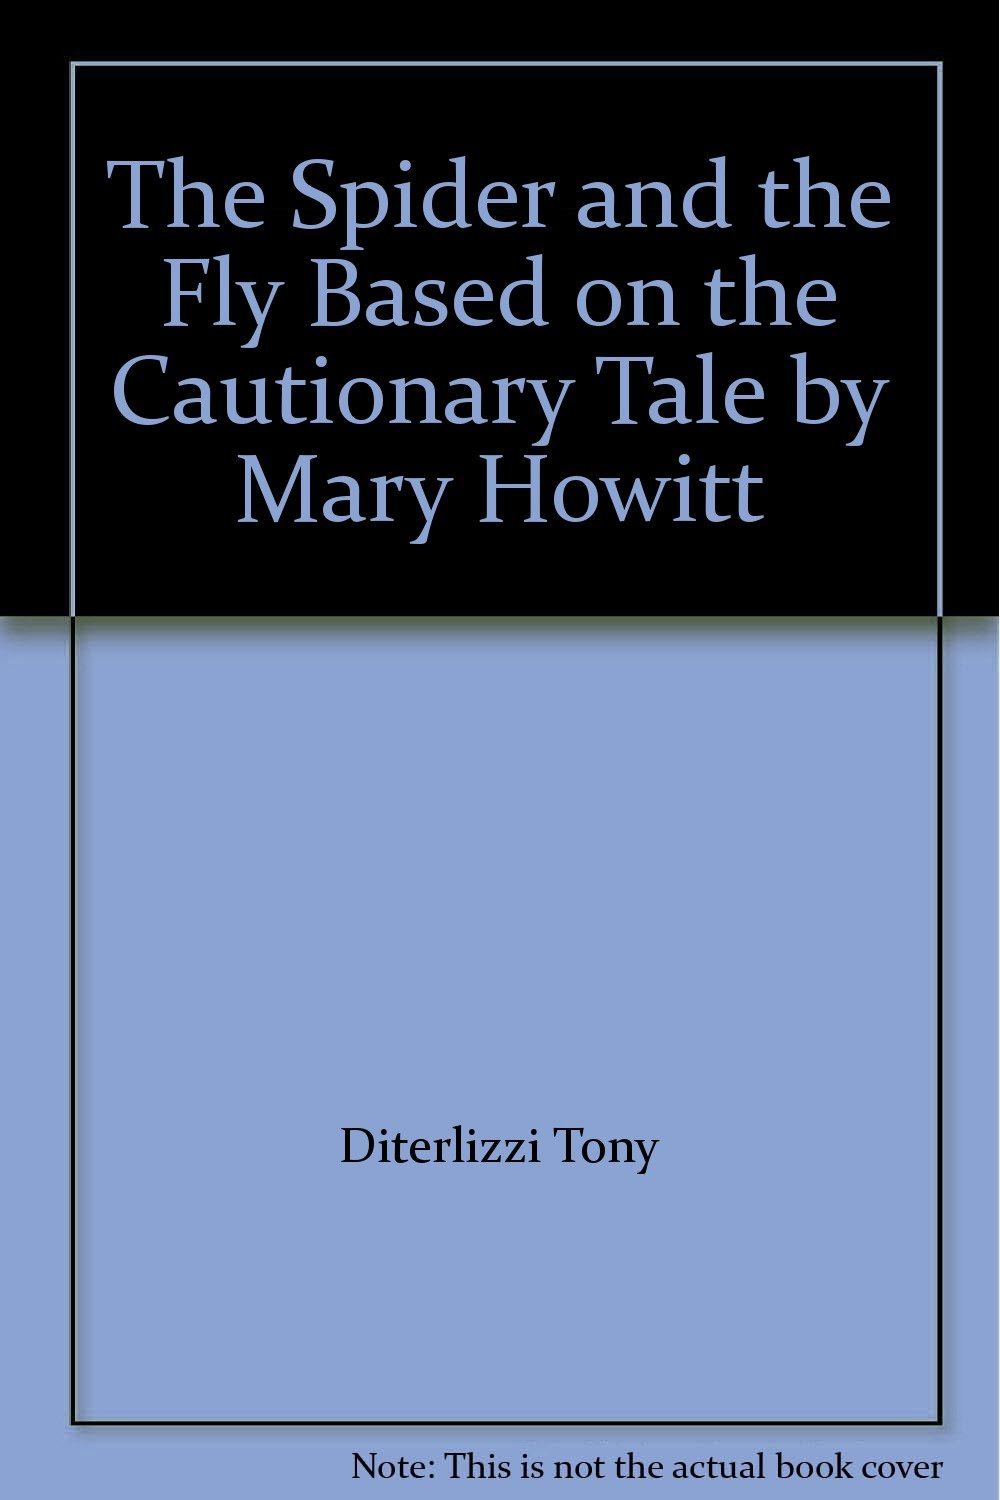 Download The Spider and the Fly Based on the Cautionary Tale by Mary Howitt ebook